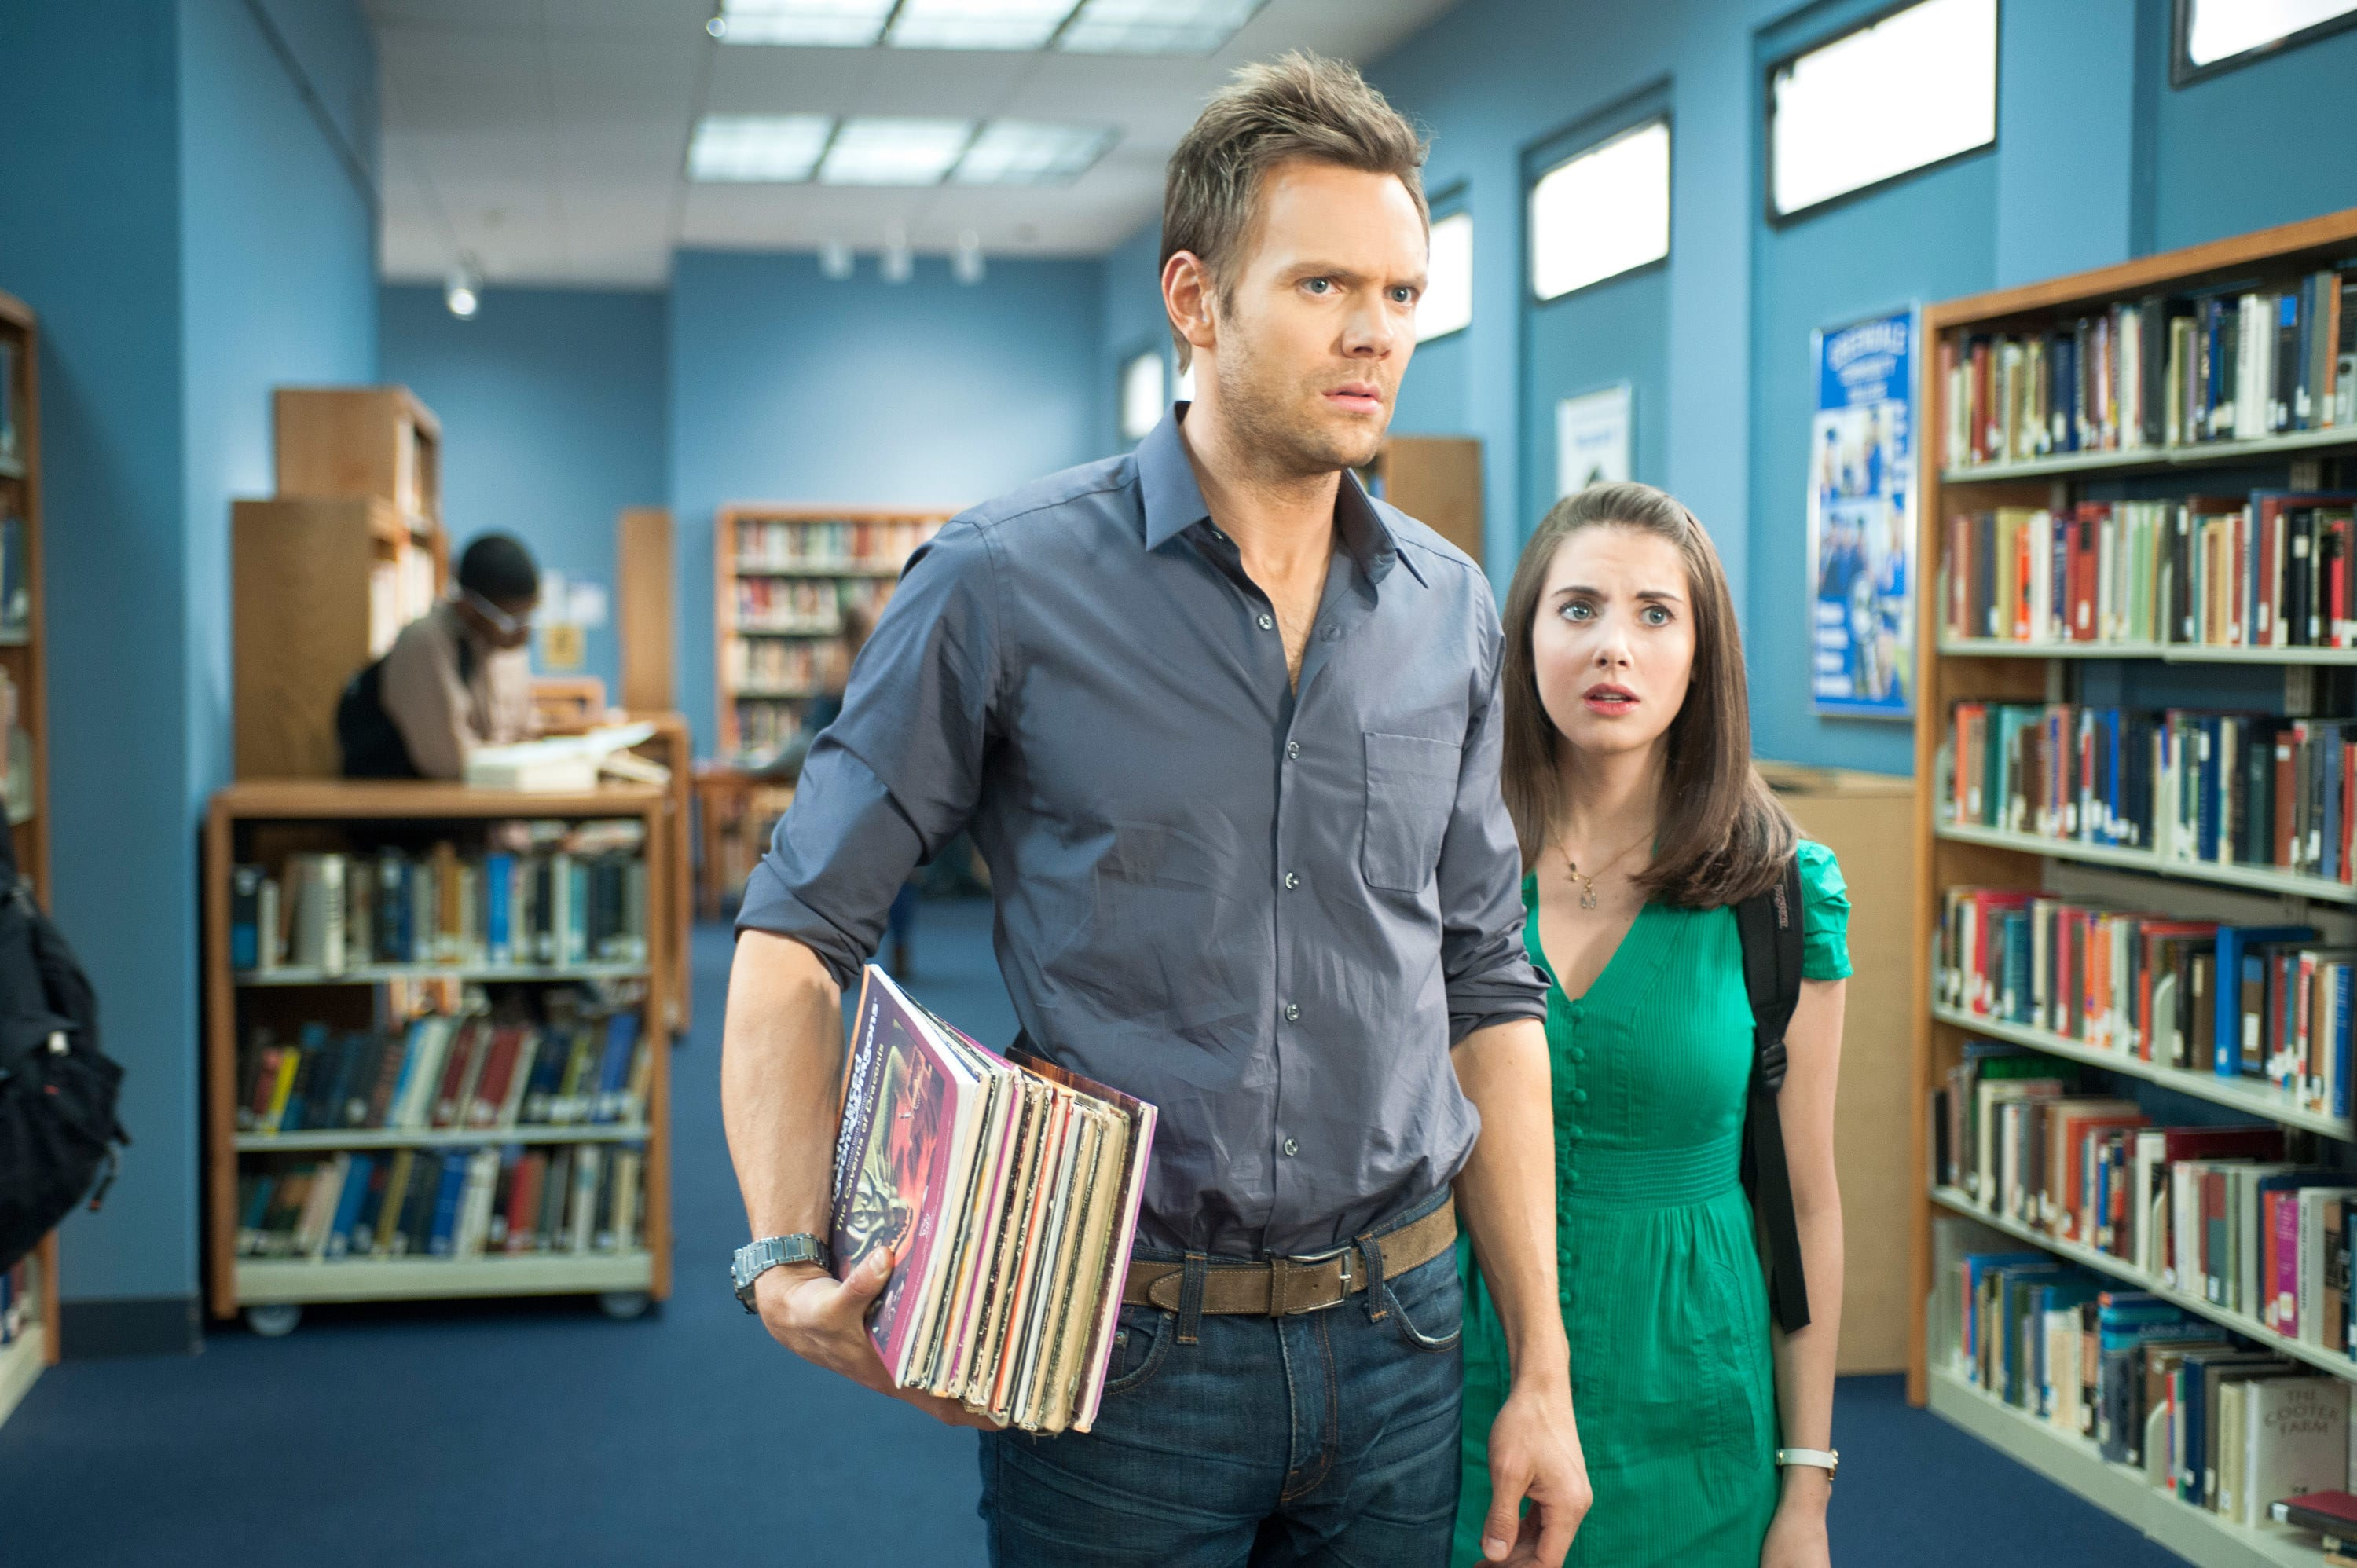 Joel McHale and Alison Brie in a Community College library